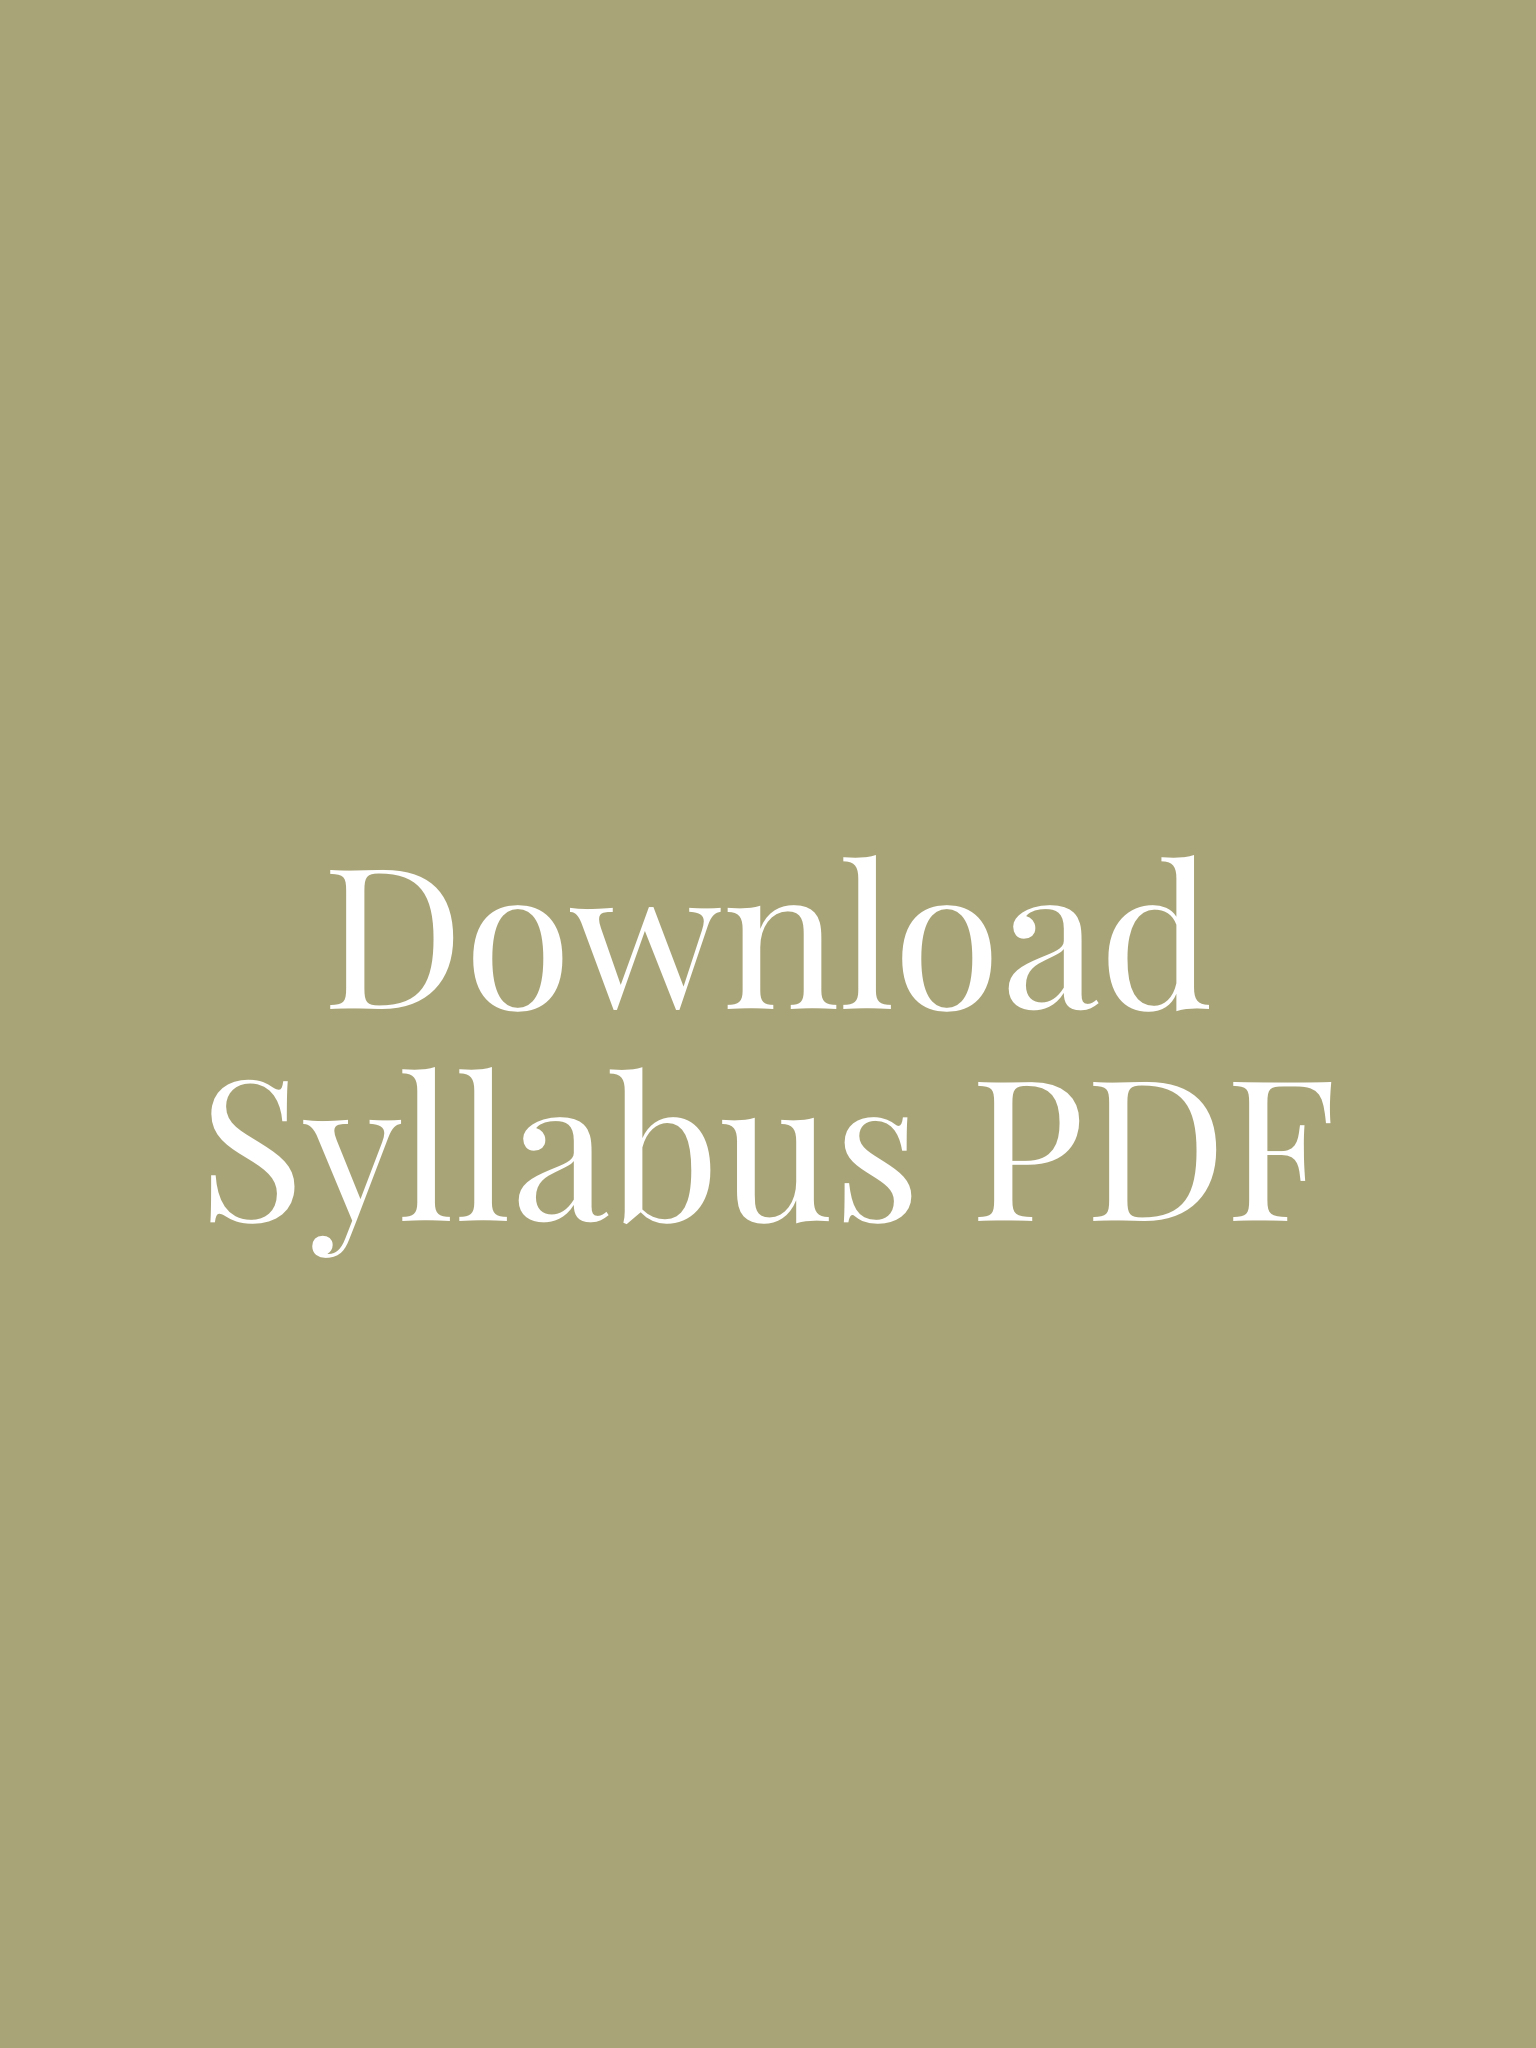 (click a session title to activate syllabus download link)